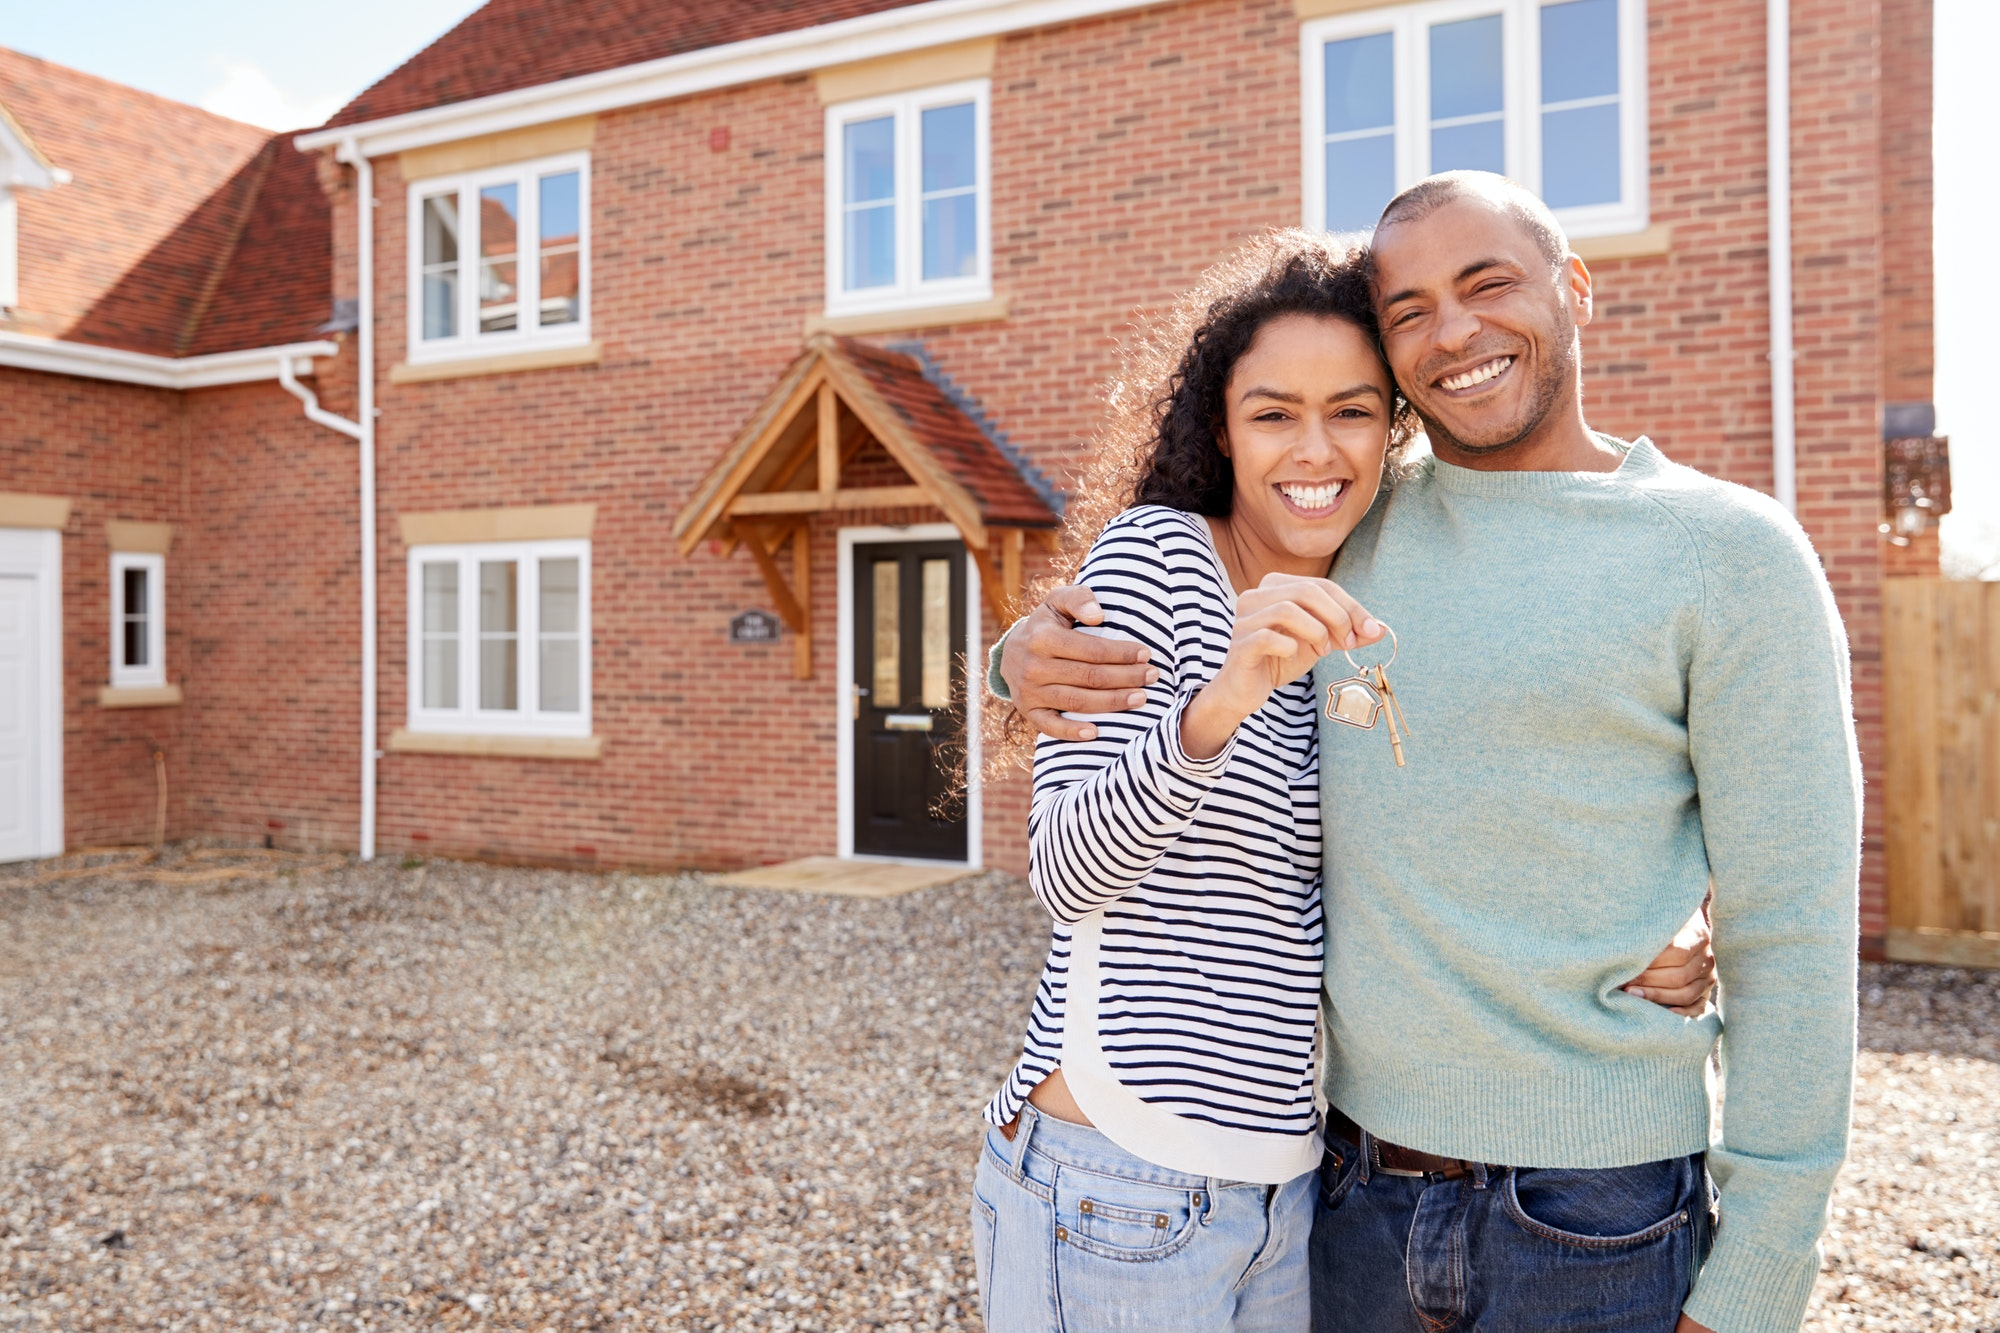 First time home buyer Holding Keys Standing Outside New Home On Moving Day